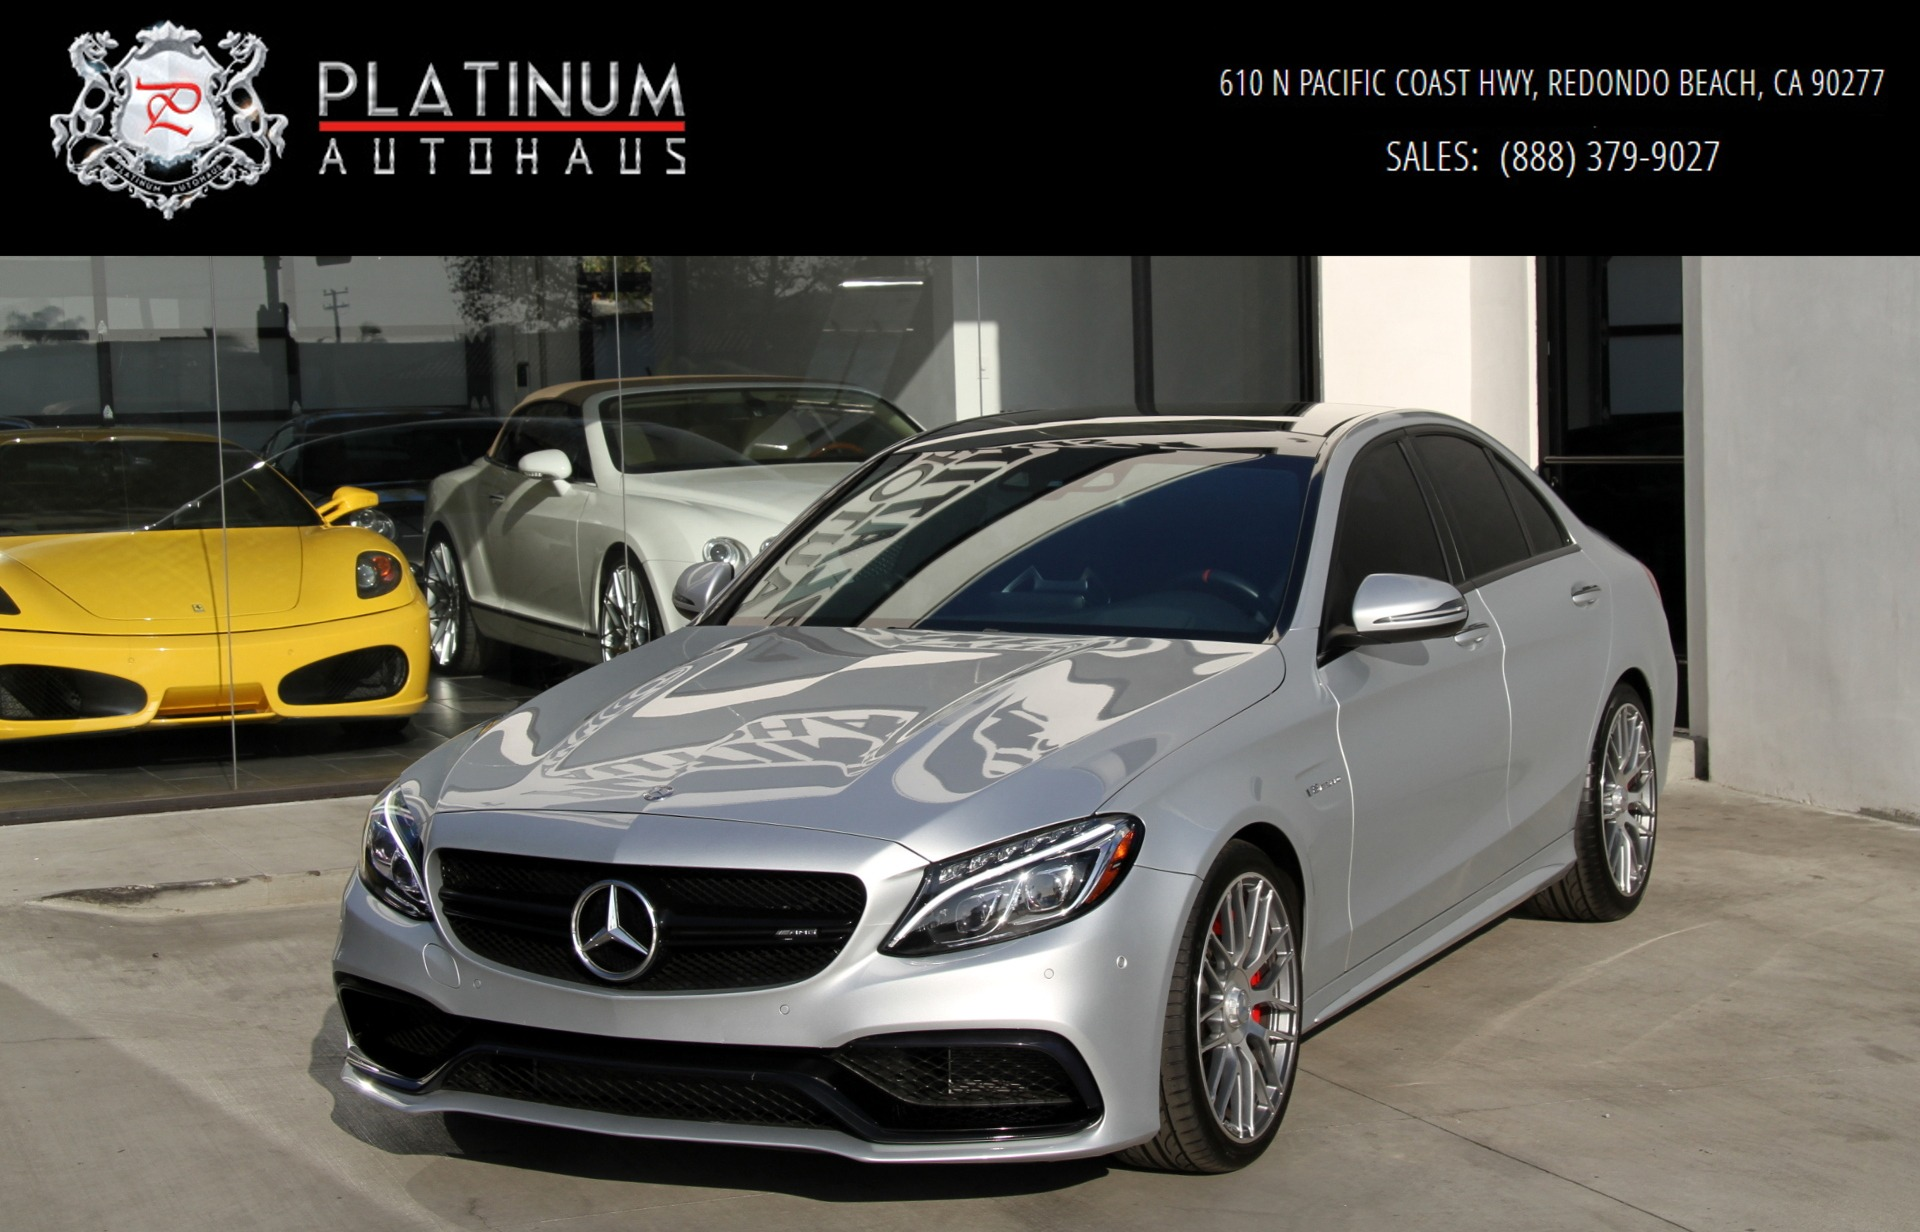 2016 mercedes benz c63 s amg stock 6004 for sale near for Used mercedes benz near me